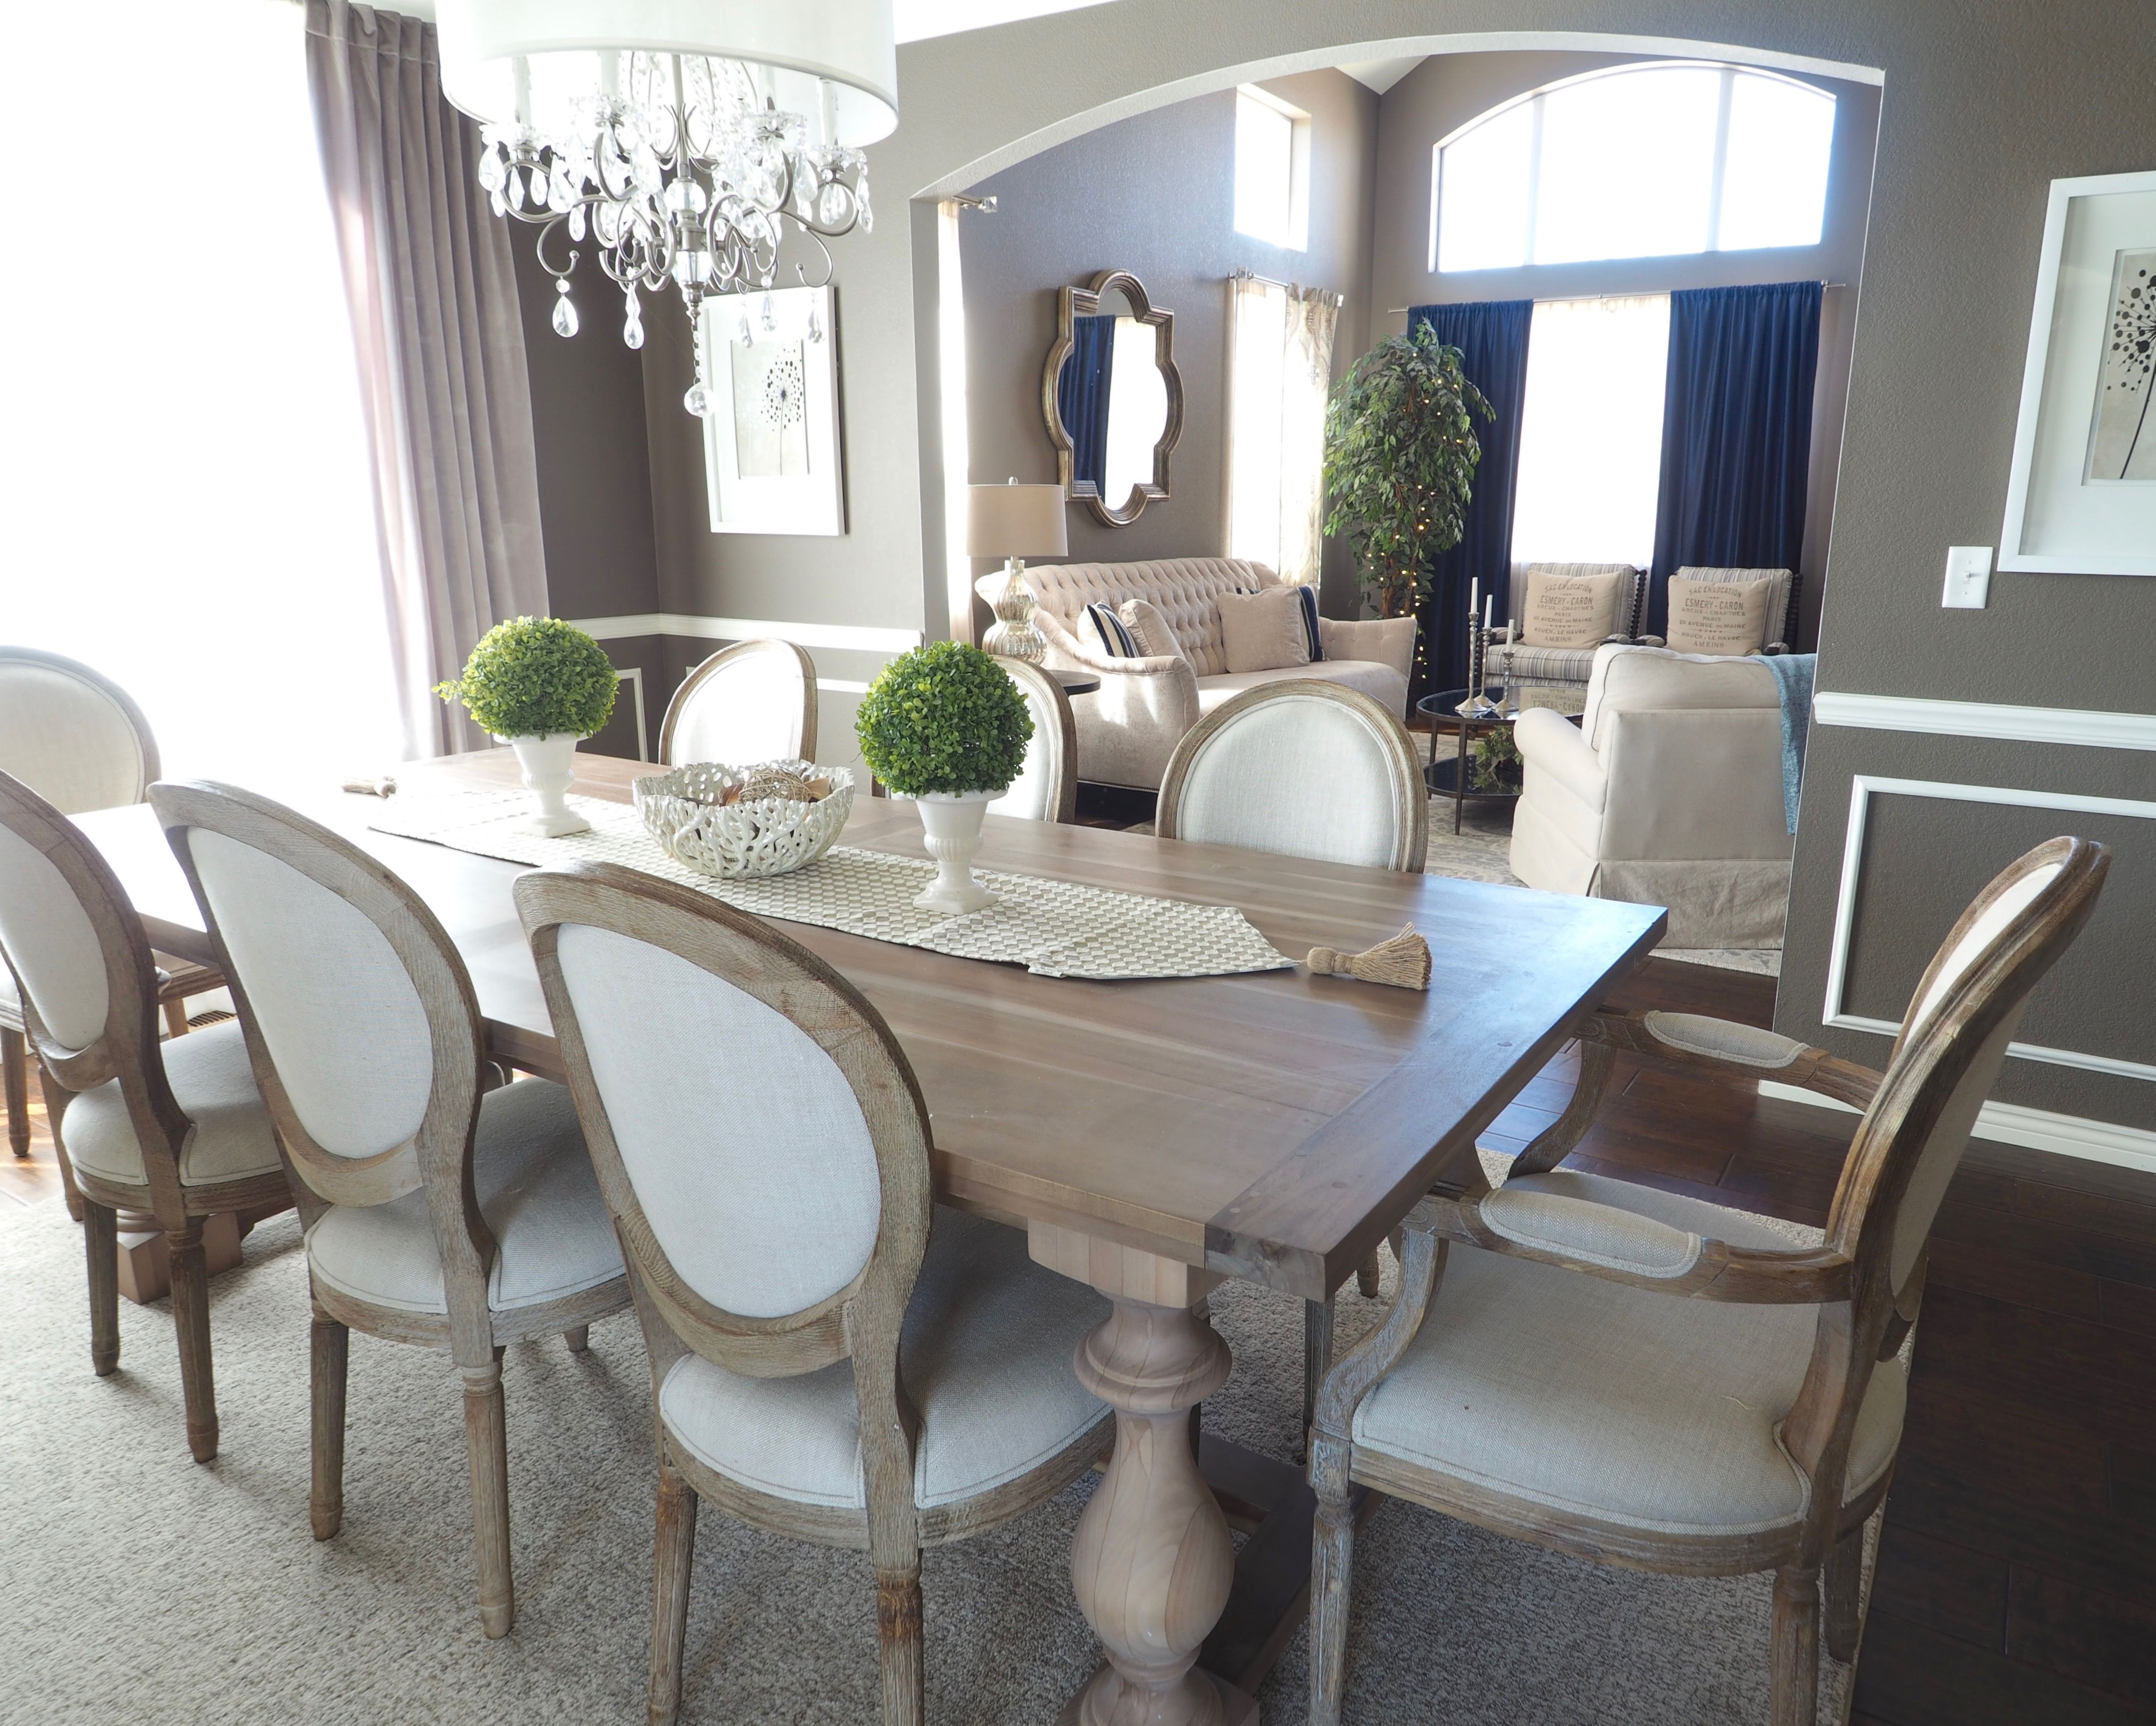 Vintage Dining Room Chairs Leather Sling Glam Rustic Wainscoting Diy Velvet Curtains Gray Monochromatic Restoration